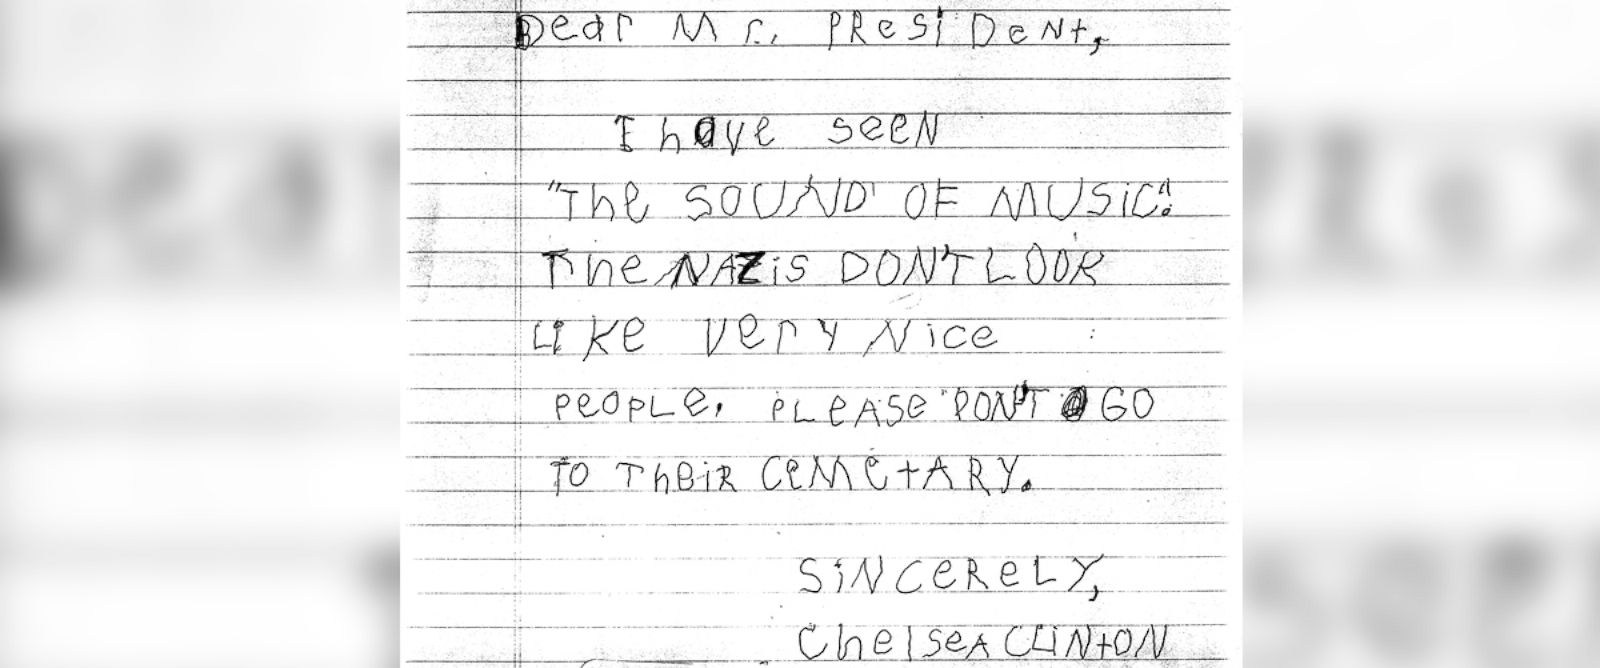 PHOTO: Chelsea Clinton wrote letter to President Ronald Reagan when she was 5 years old.